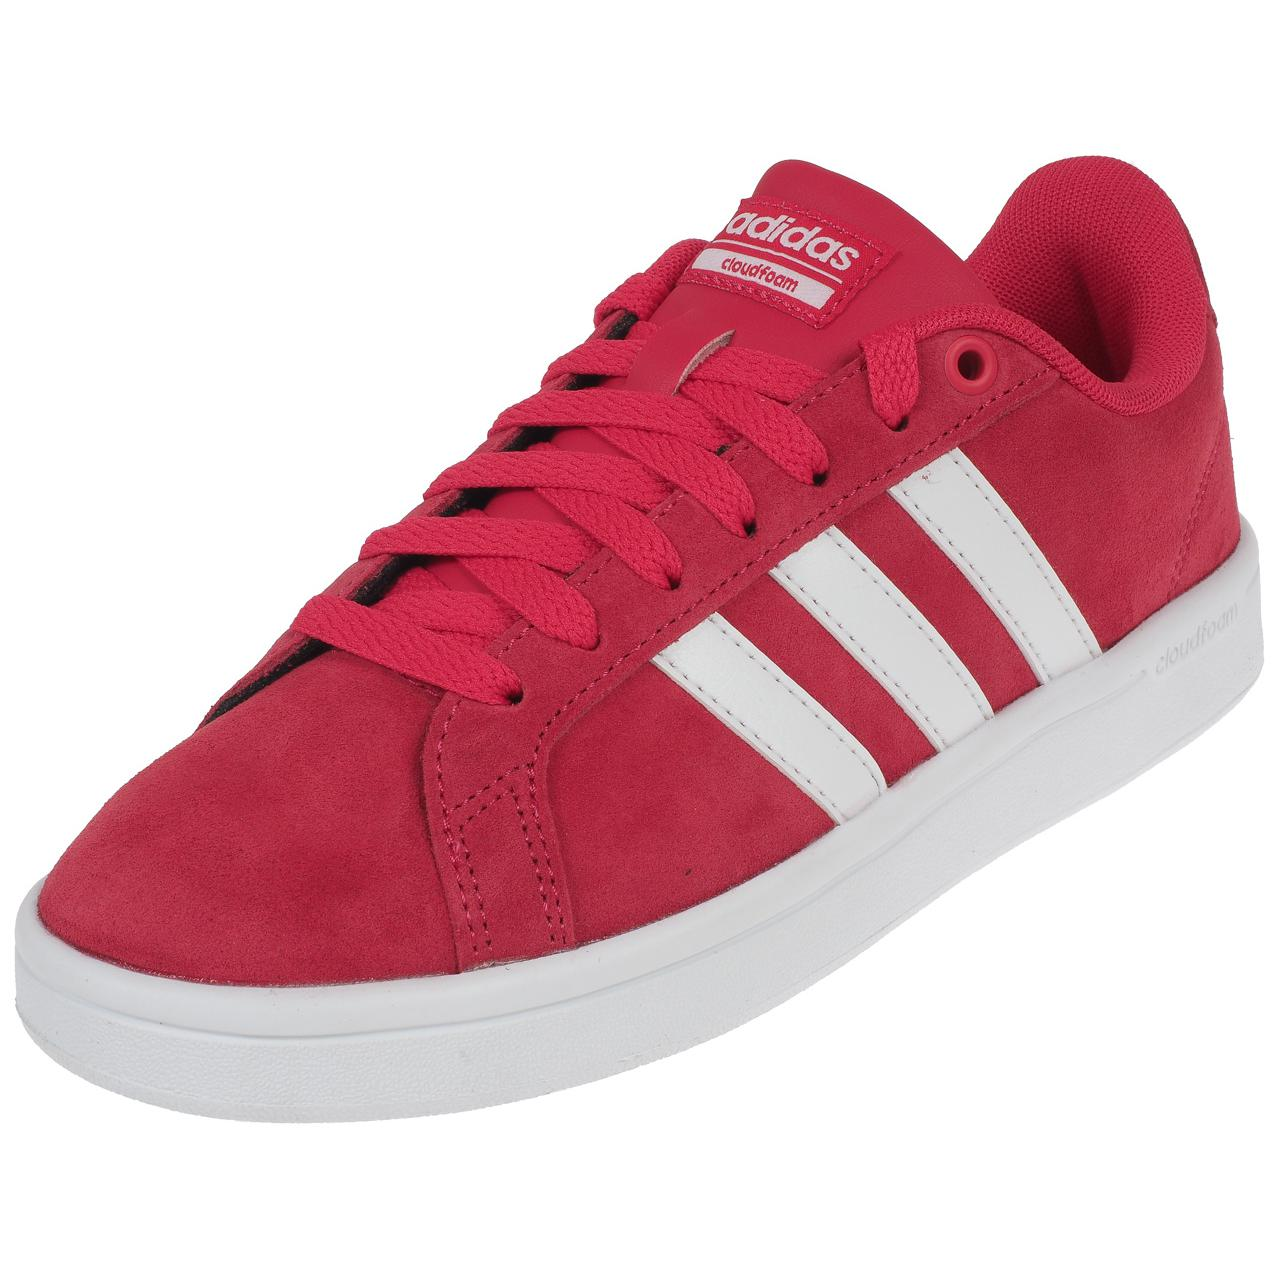 Chaussures mode ville Adidas neo Advantage w rose Rose 74609 Neuf